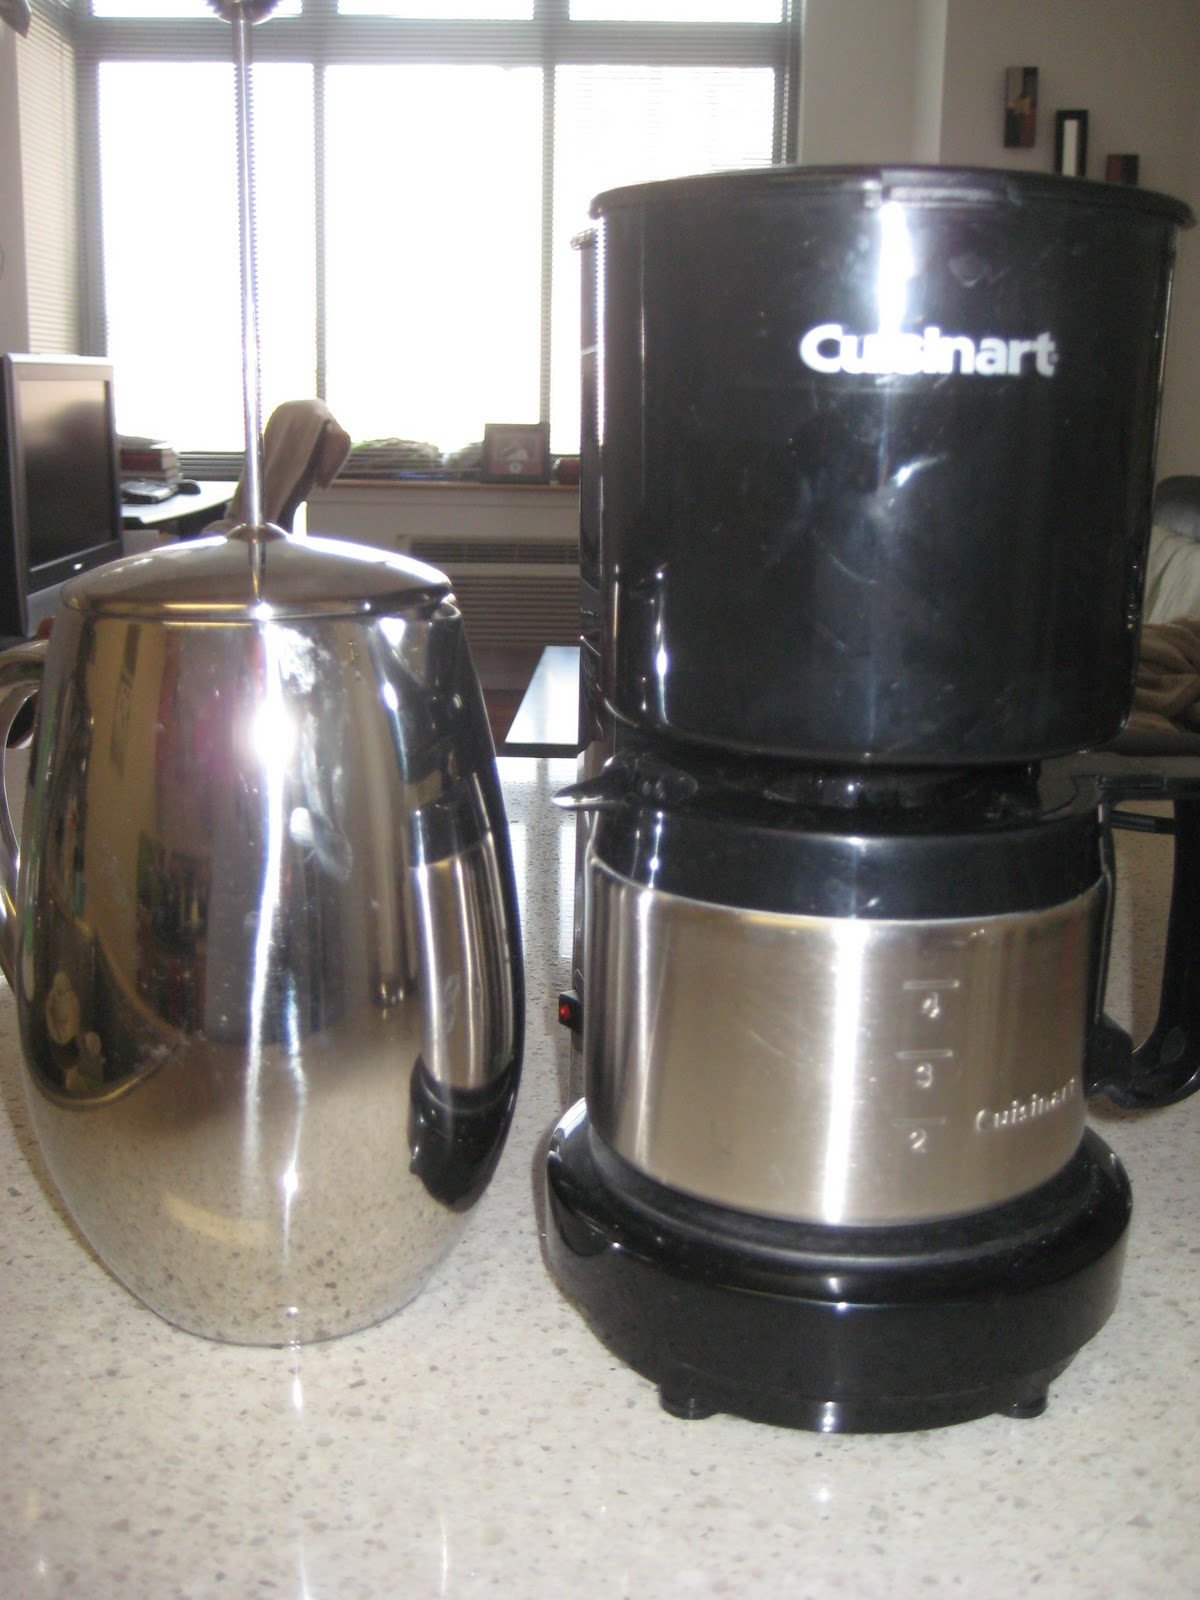 Taste Test: Coffee Maker vs. French Press! - Honey, Whats Cooking